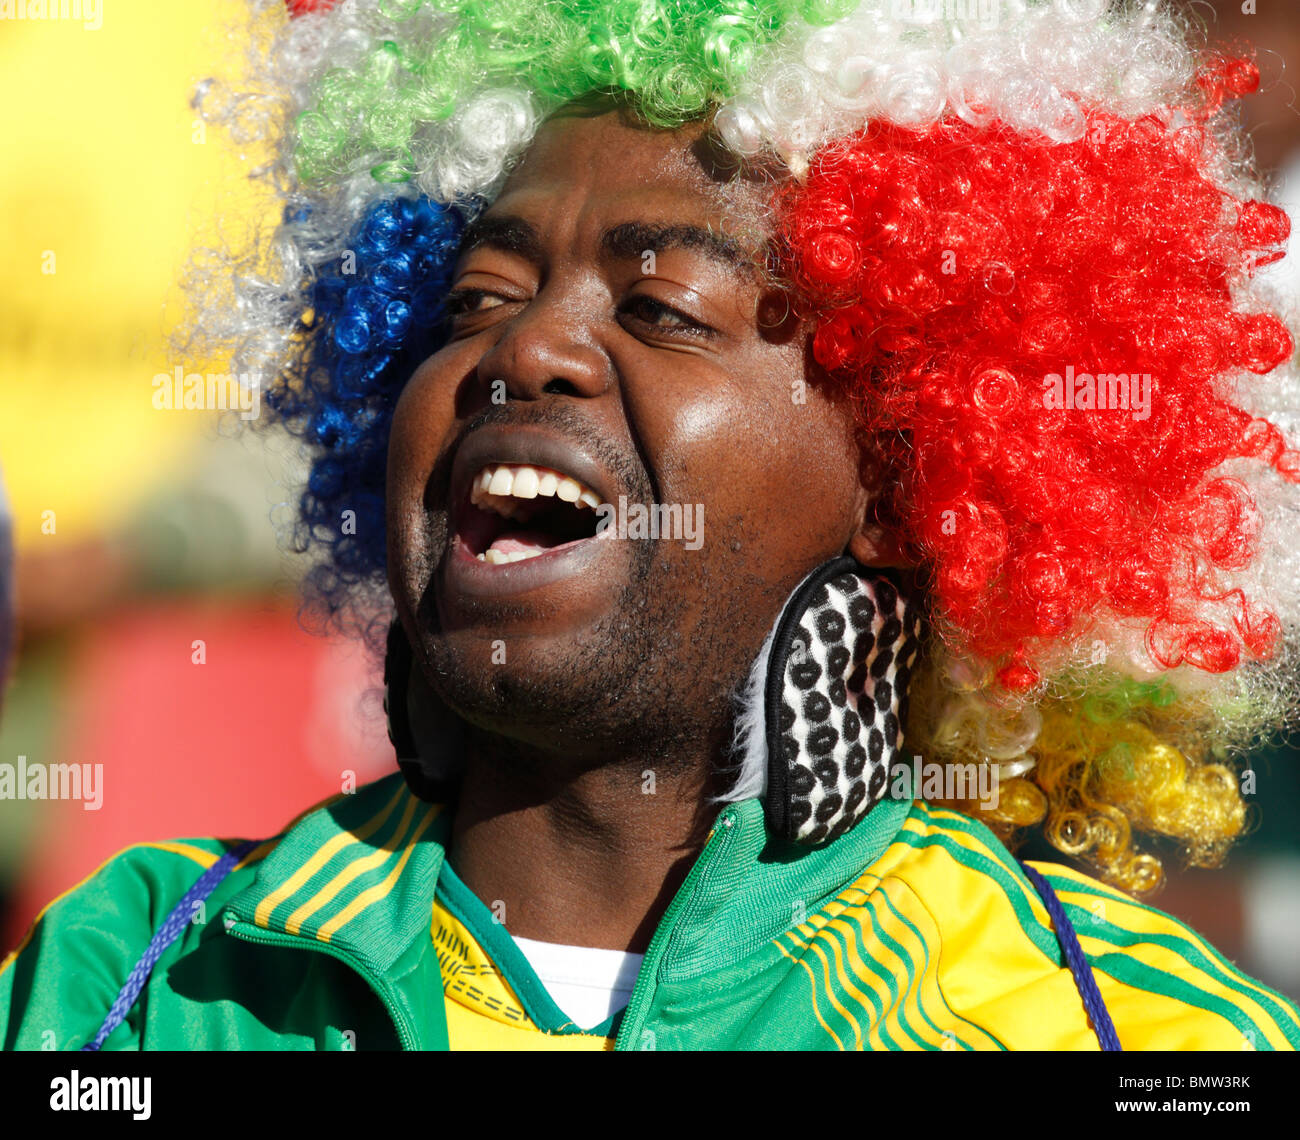 Spectator at a 2010 FIFA World Cup football match between Slovenia and the USA June 18, 2010. - Stock Image